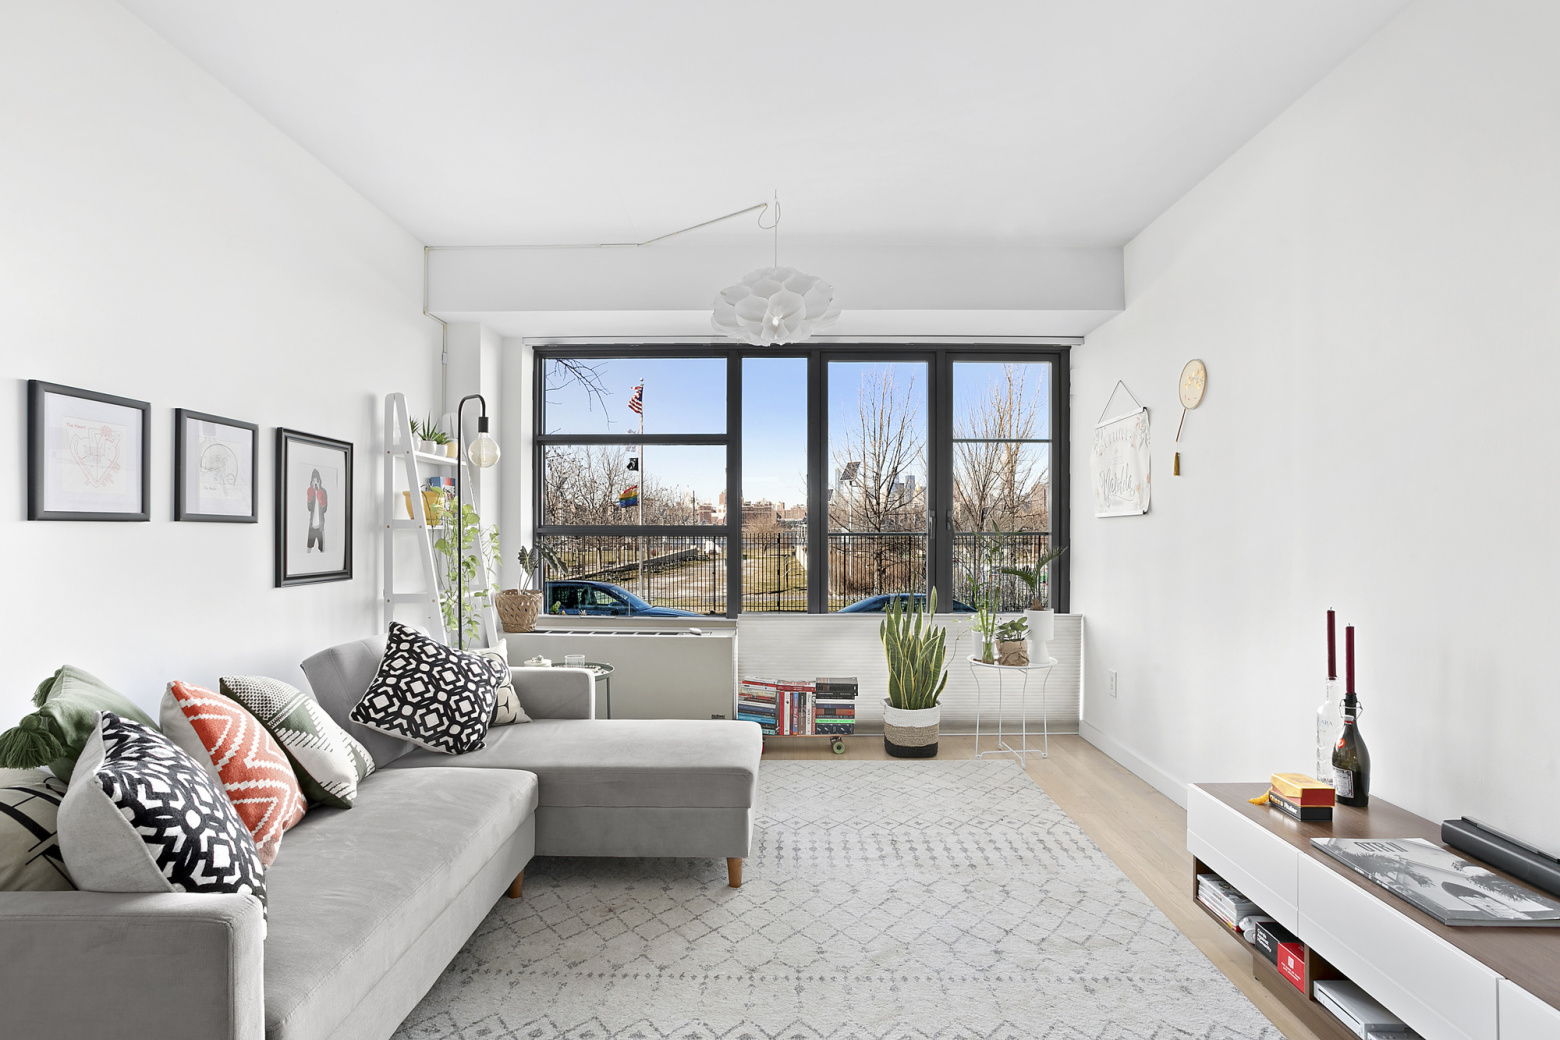 Apartment for sale at 49 North 8th Street, Apt 1-B